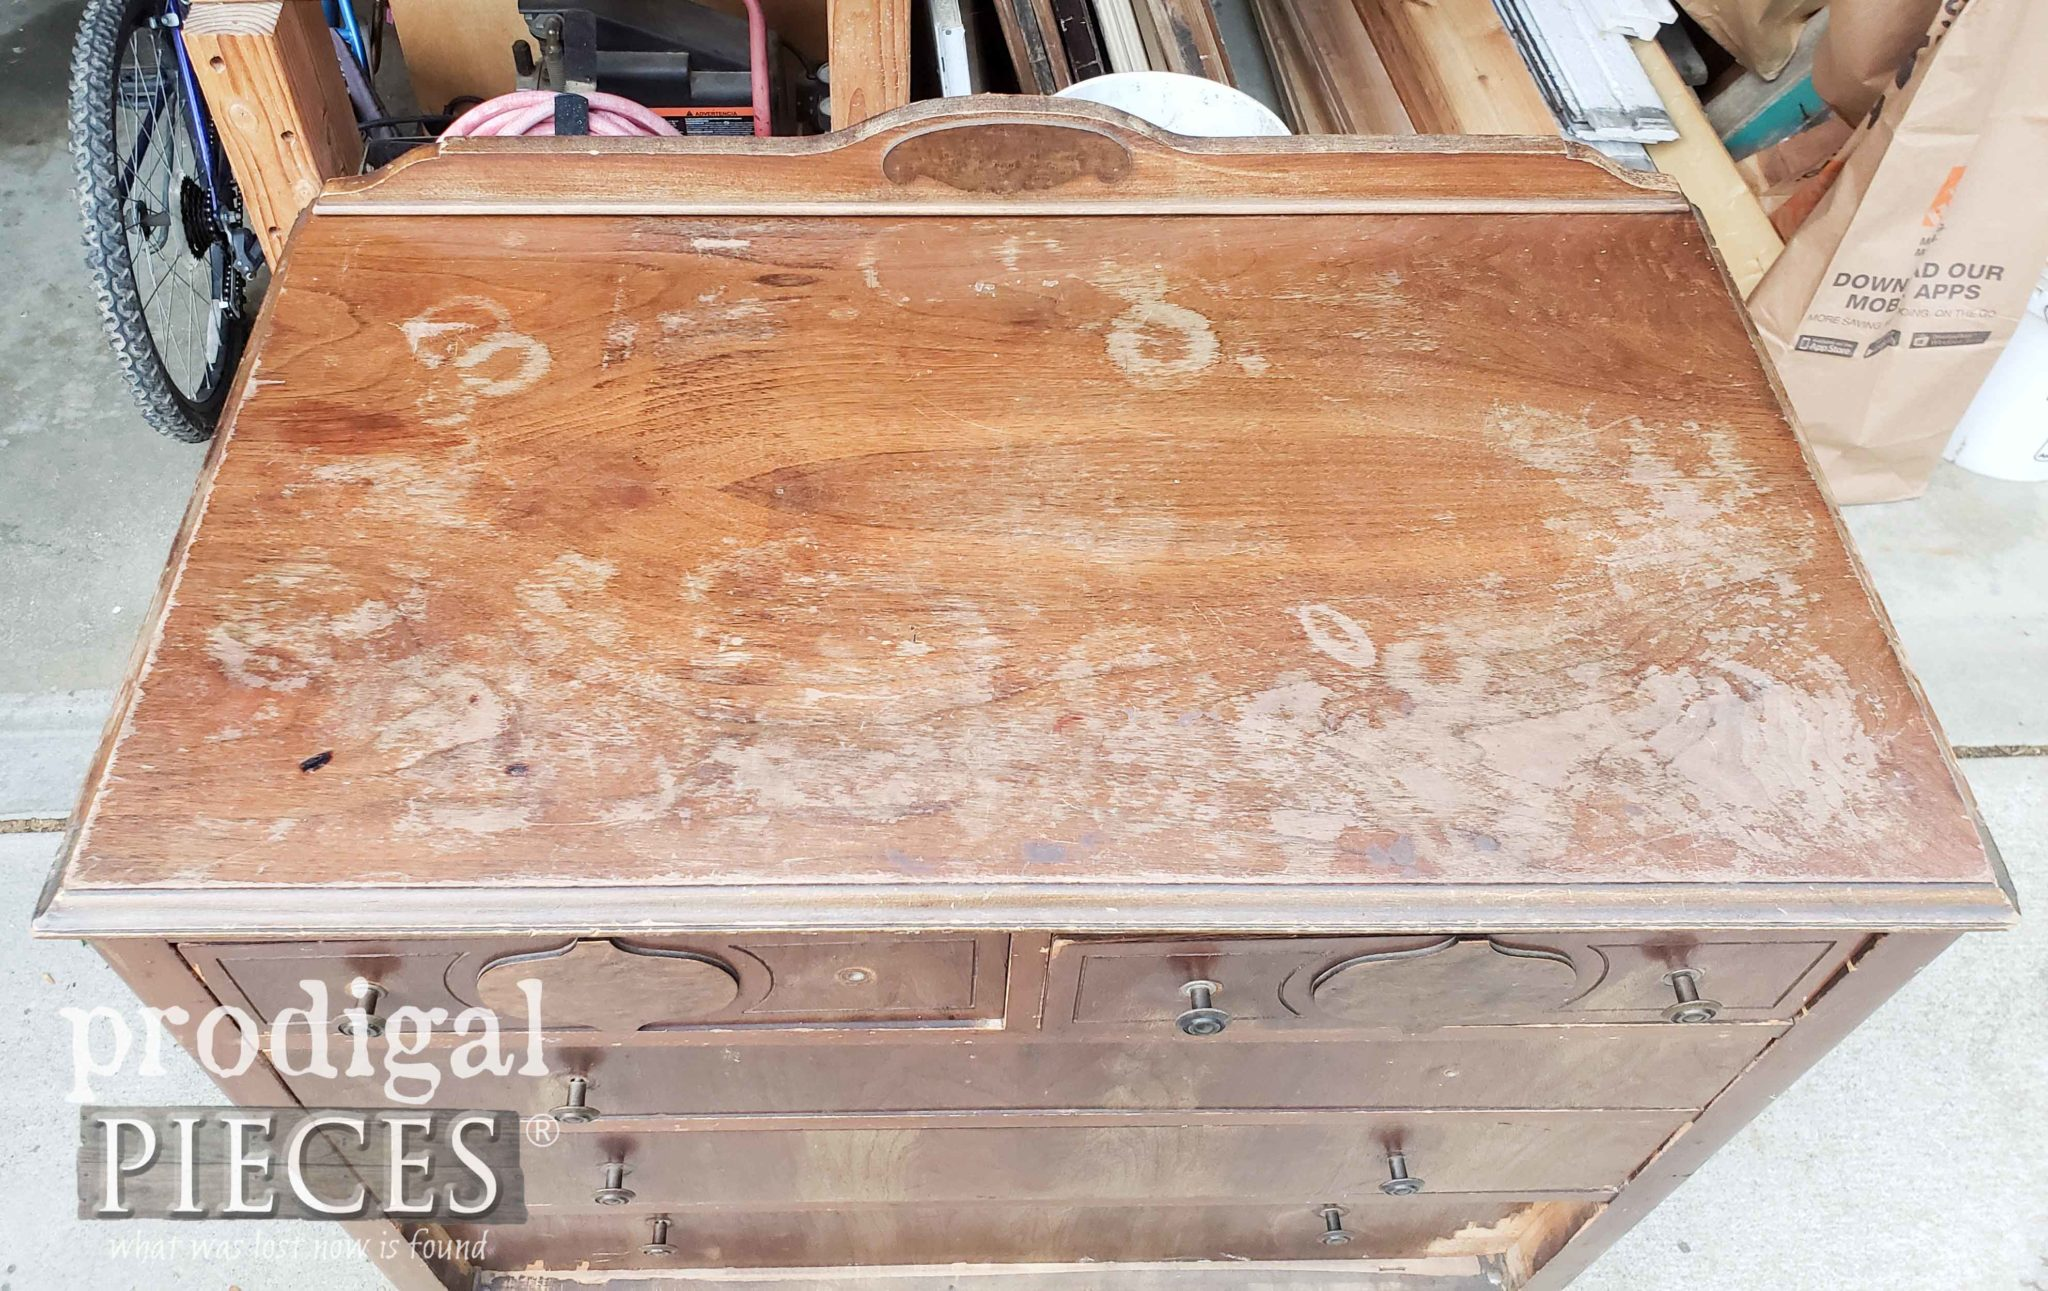 Damaged Chest of Drawers Top | prodigalpieces.com